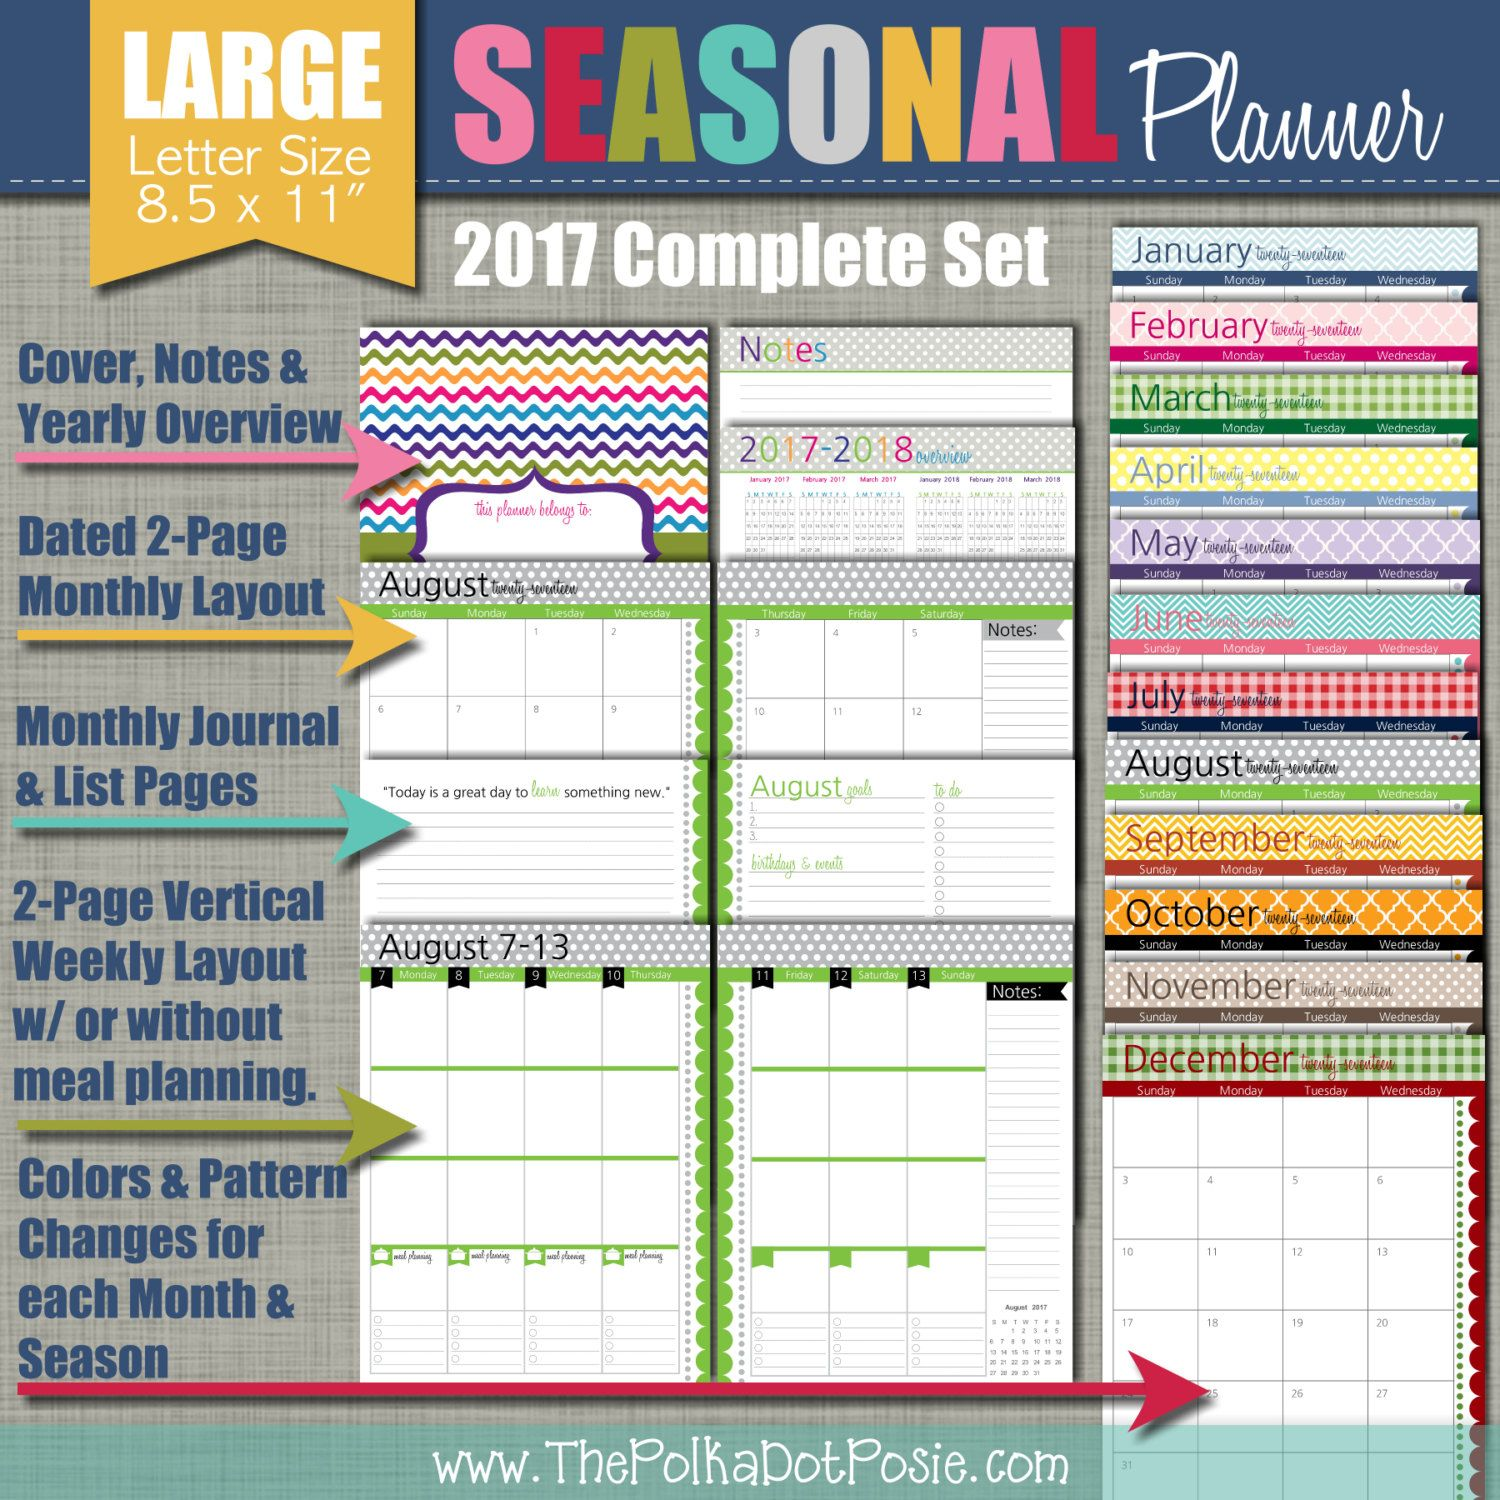 PLANNER QUICK LINKS All Planner Pages can be found at